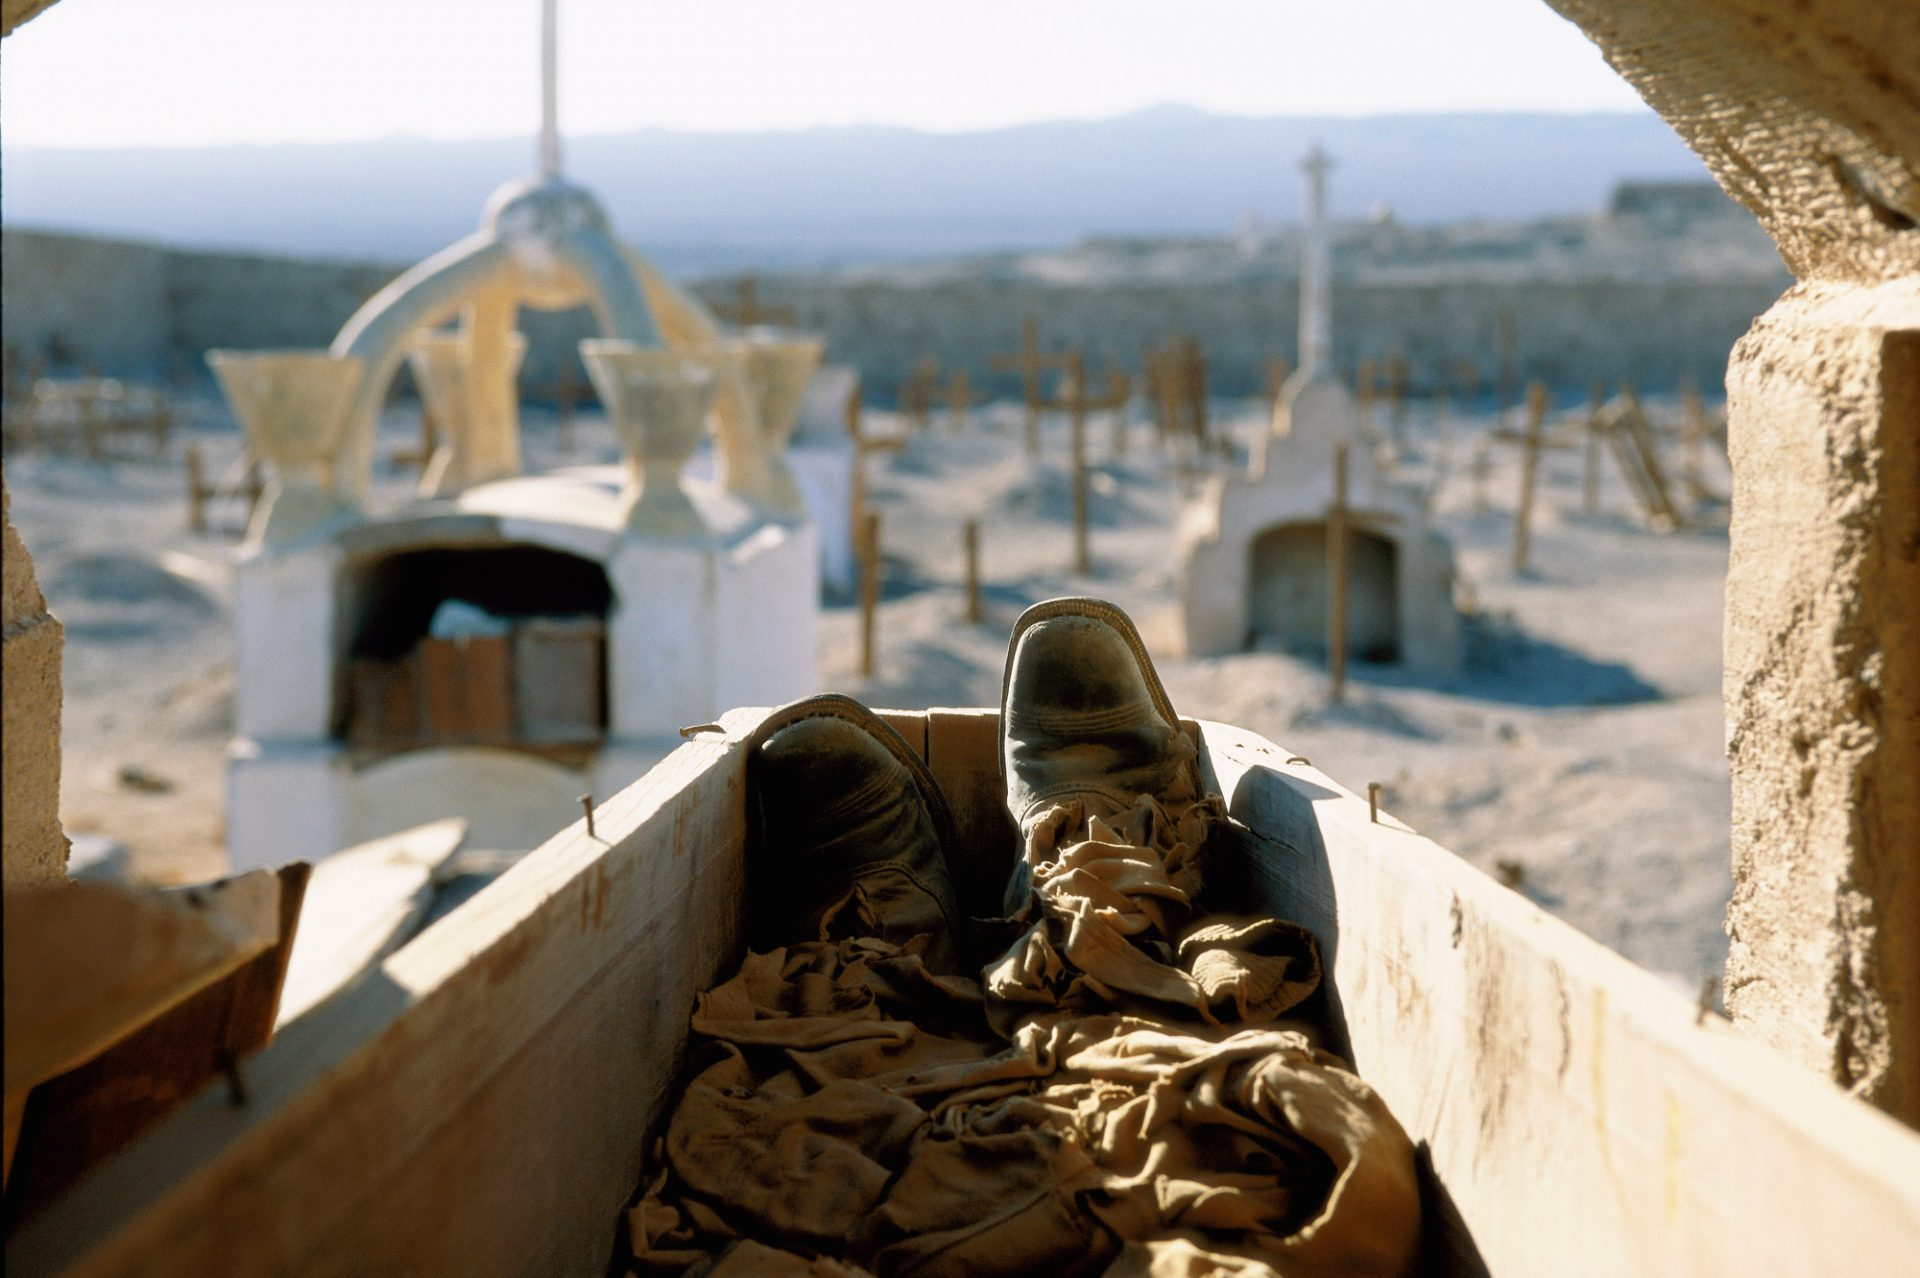 Photo: Abandoned cemetery, Atacama Desert, Chile